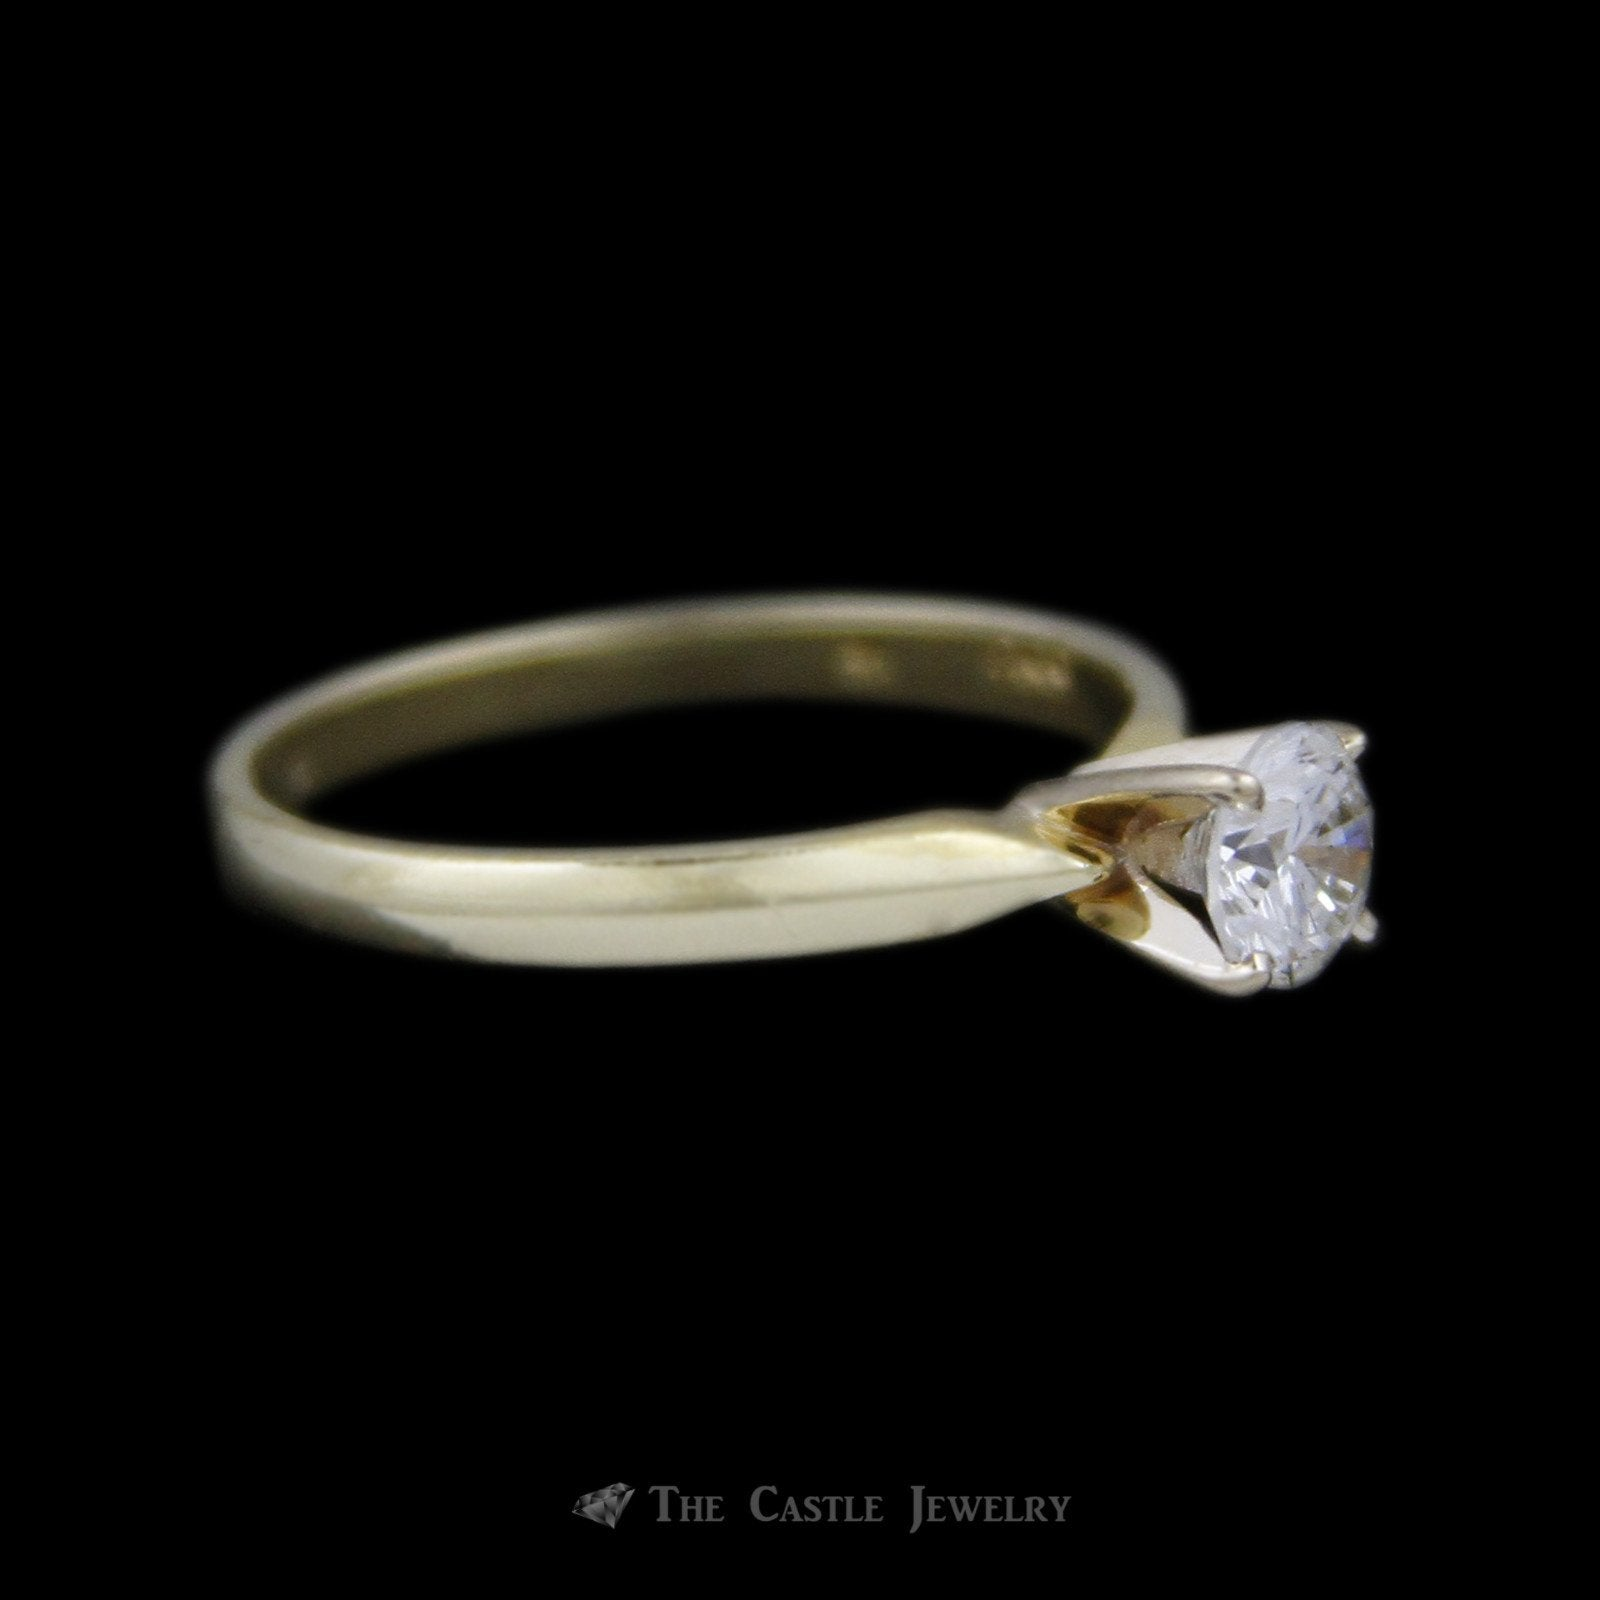 Round Brilliant Cut ½ Carat Diamond Engagement Ring SI1 G/H in 18K Yellow Gold-2